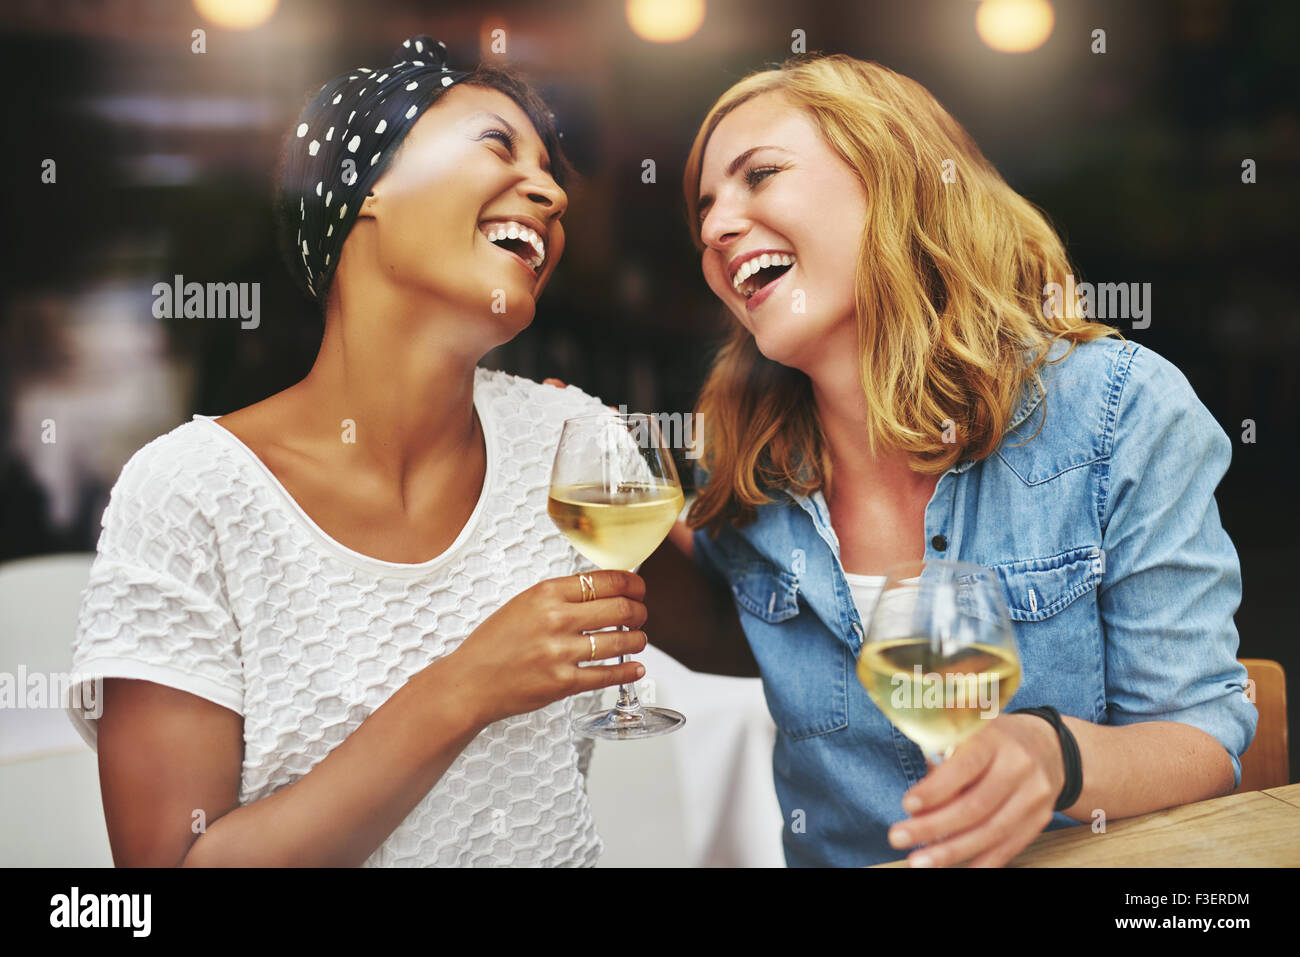 Two young attractive vivacious multiethnic female friends celebrating and laughing together over a glass of white - Stock Image